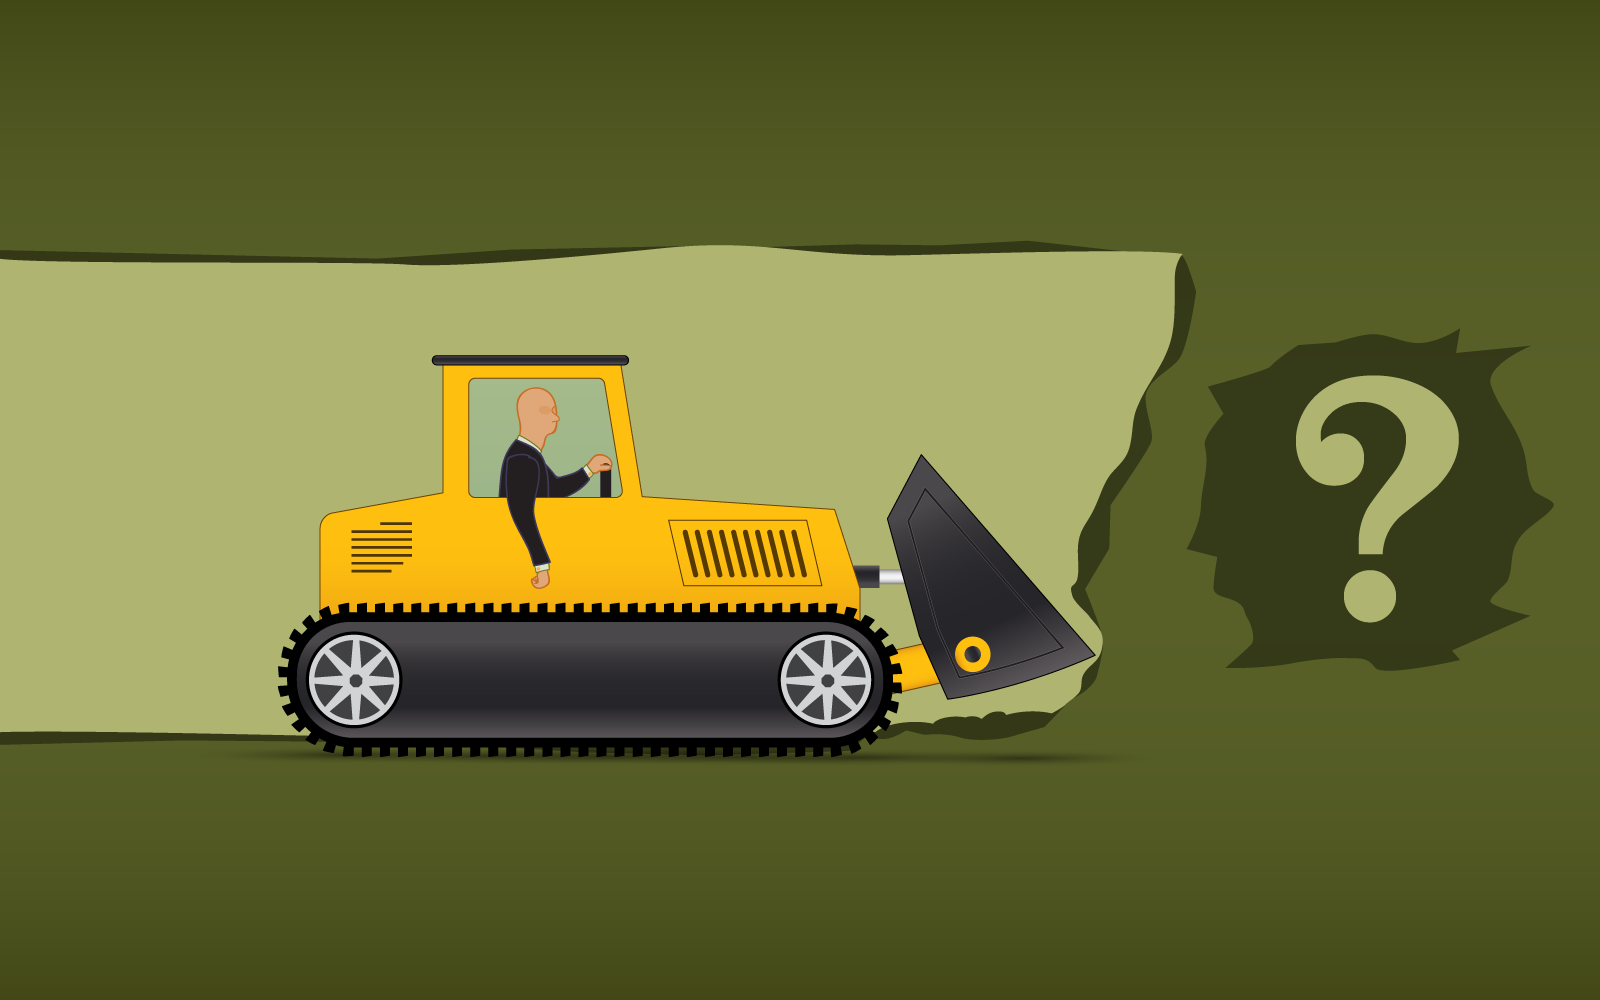 man in bulldozer truck